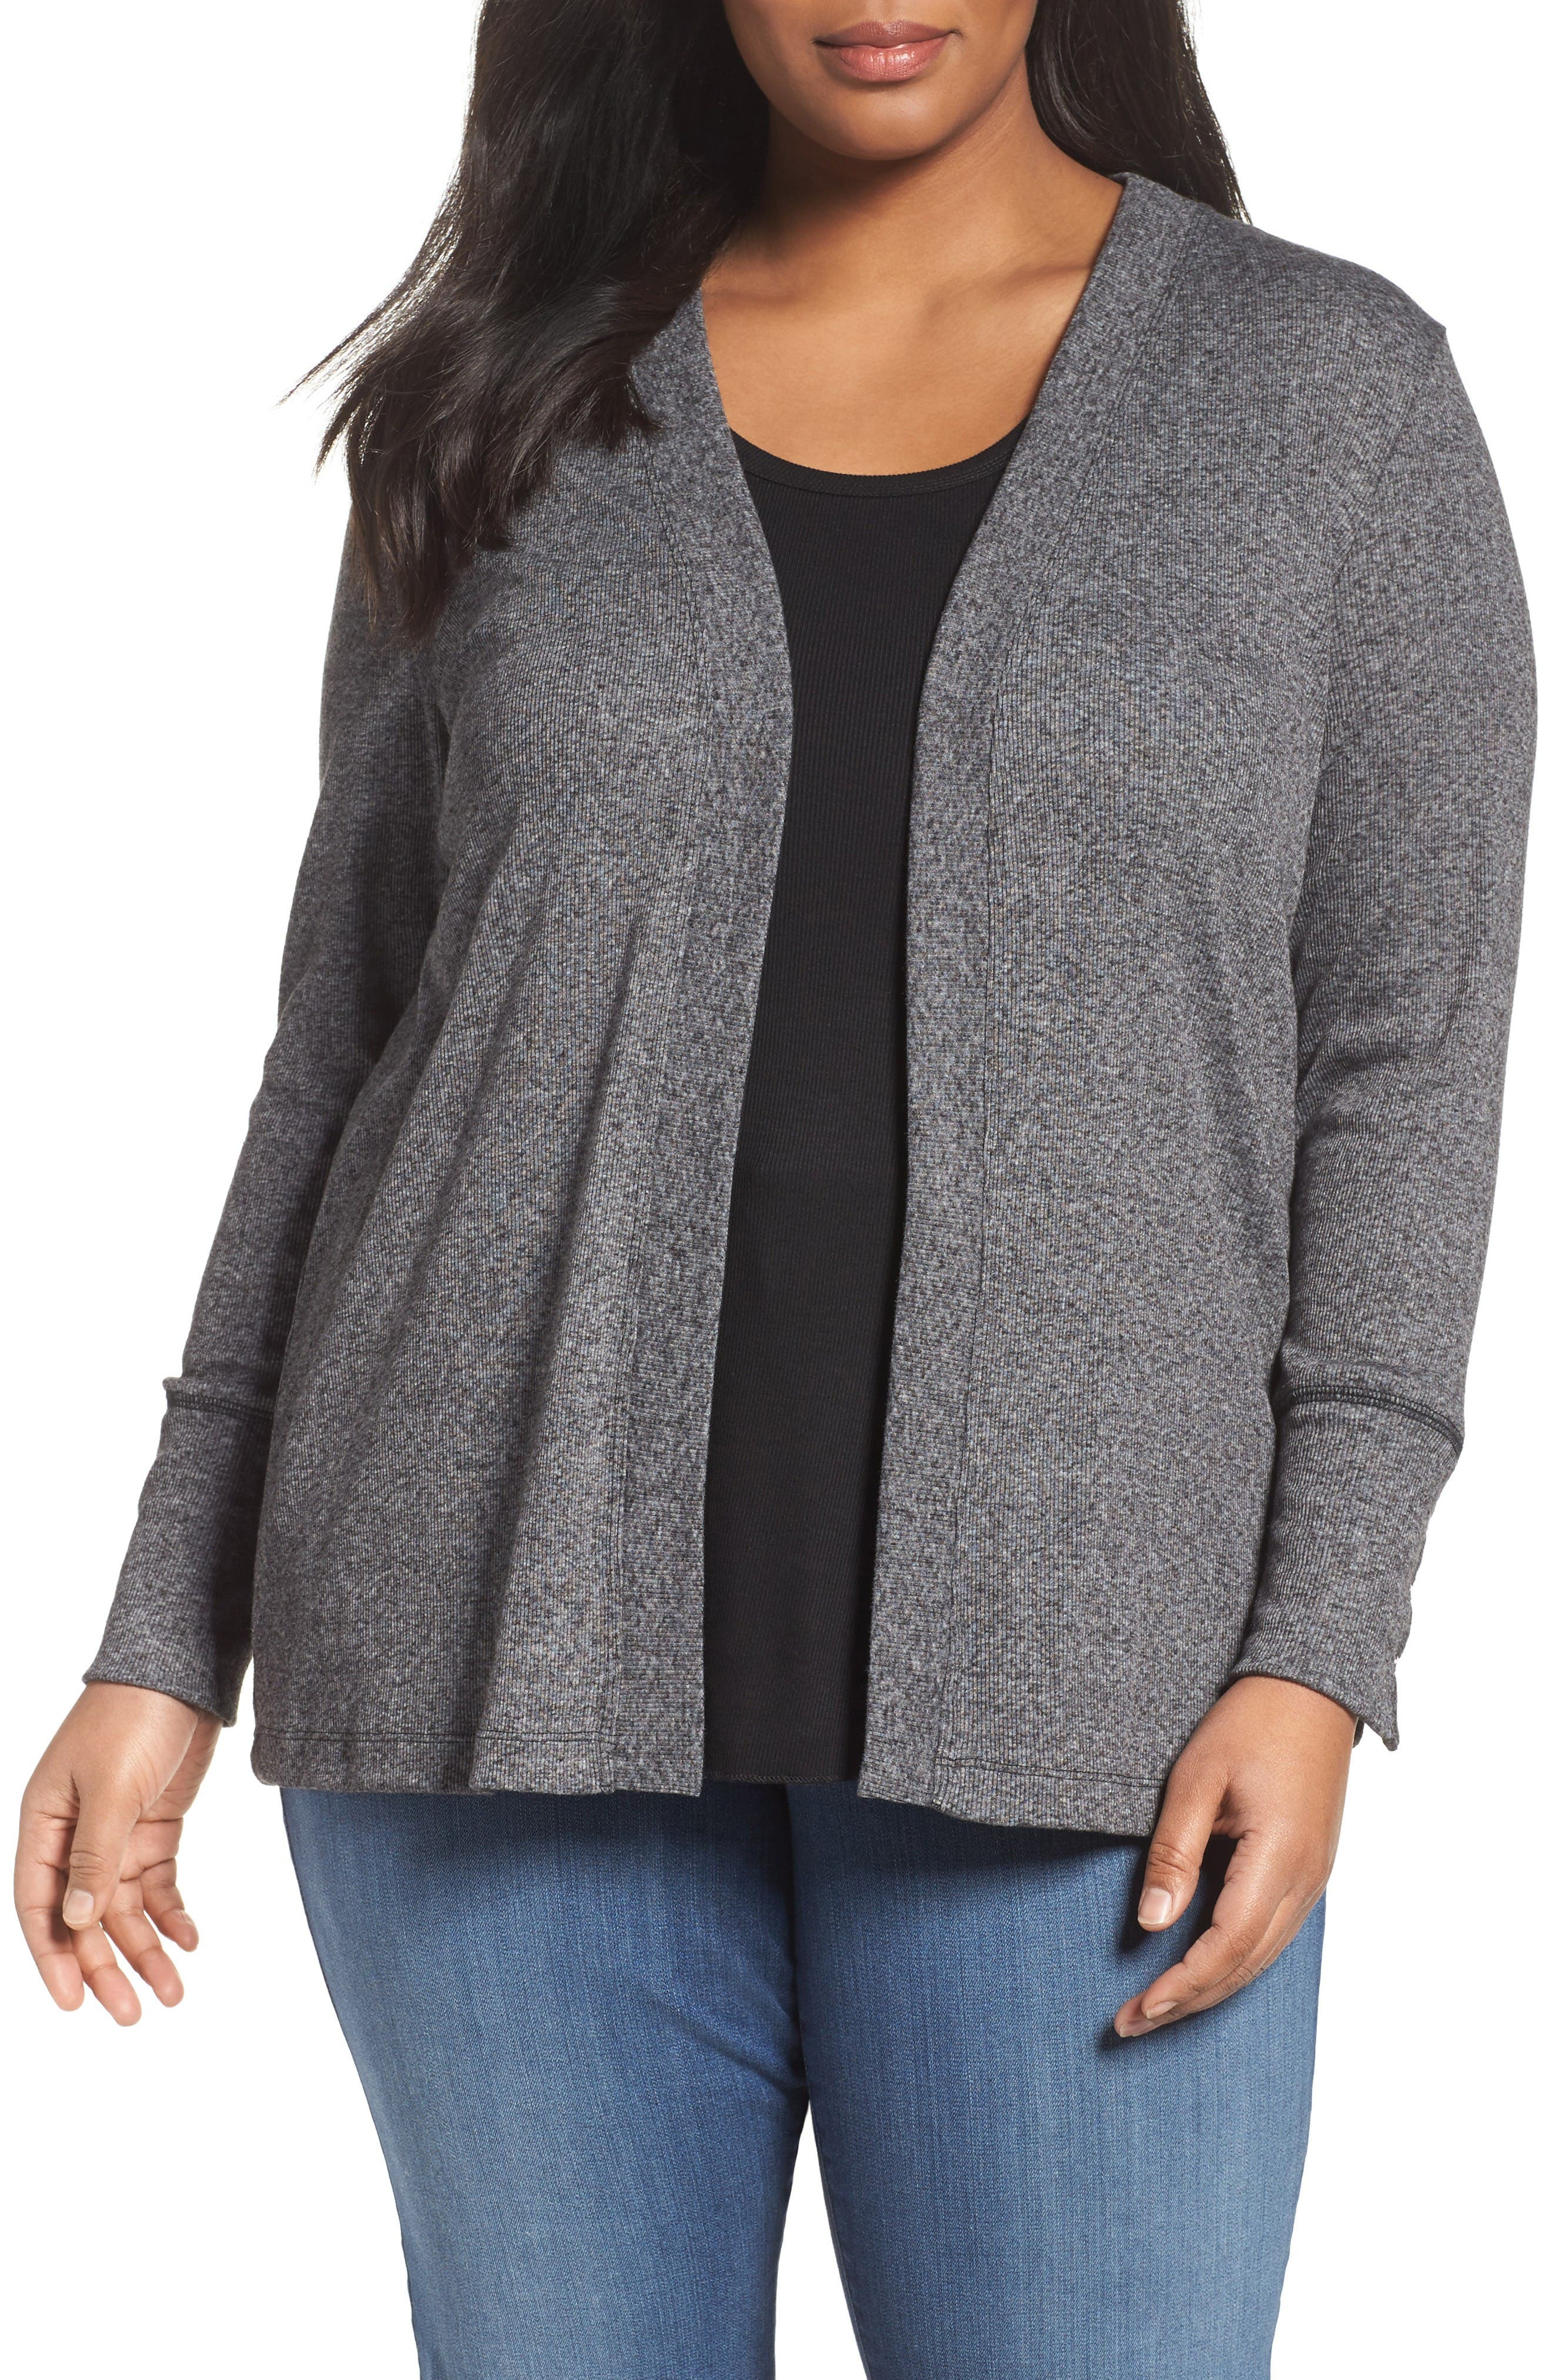 Alternate Image 1 Selected - MICHAEL Michael Kors Marled Open Cardigan (Plus Size)